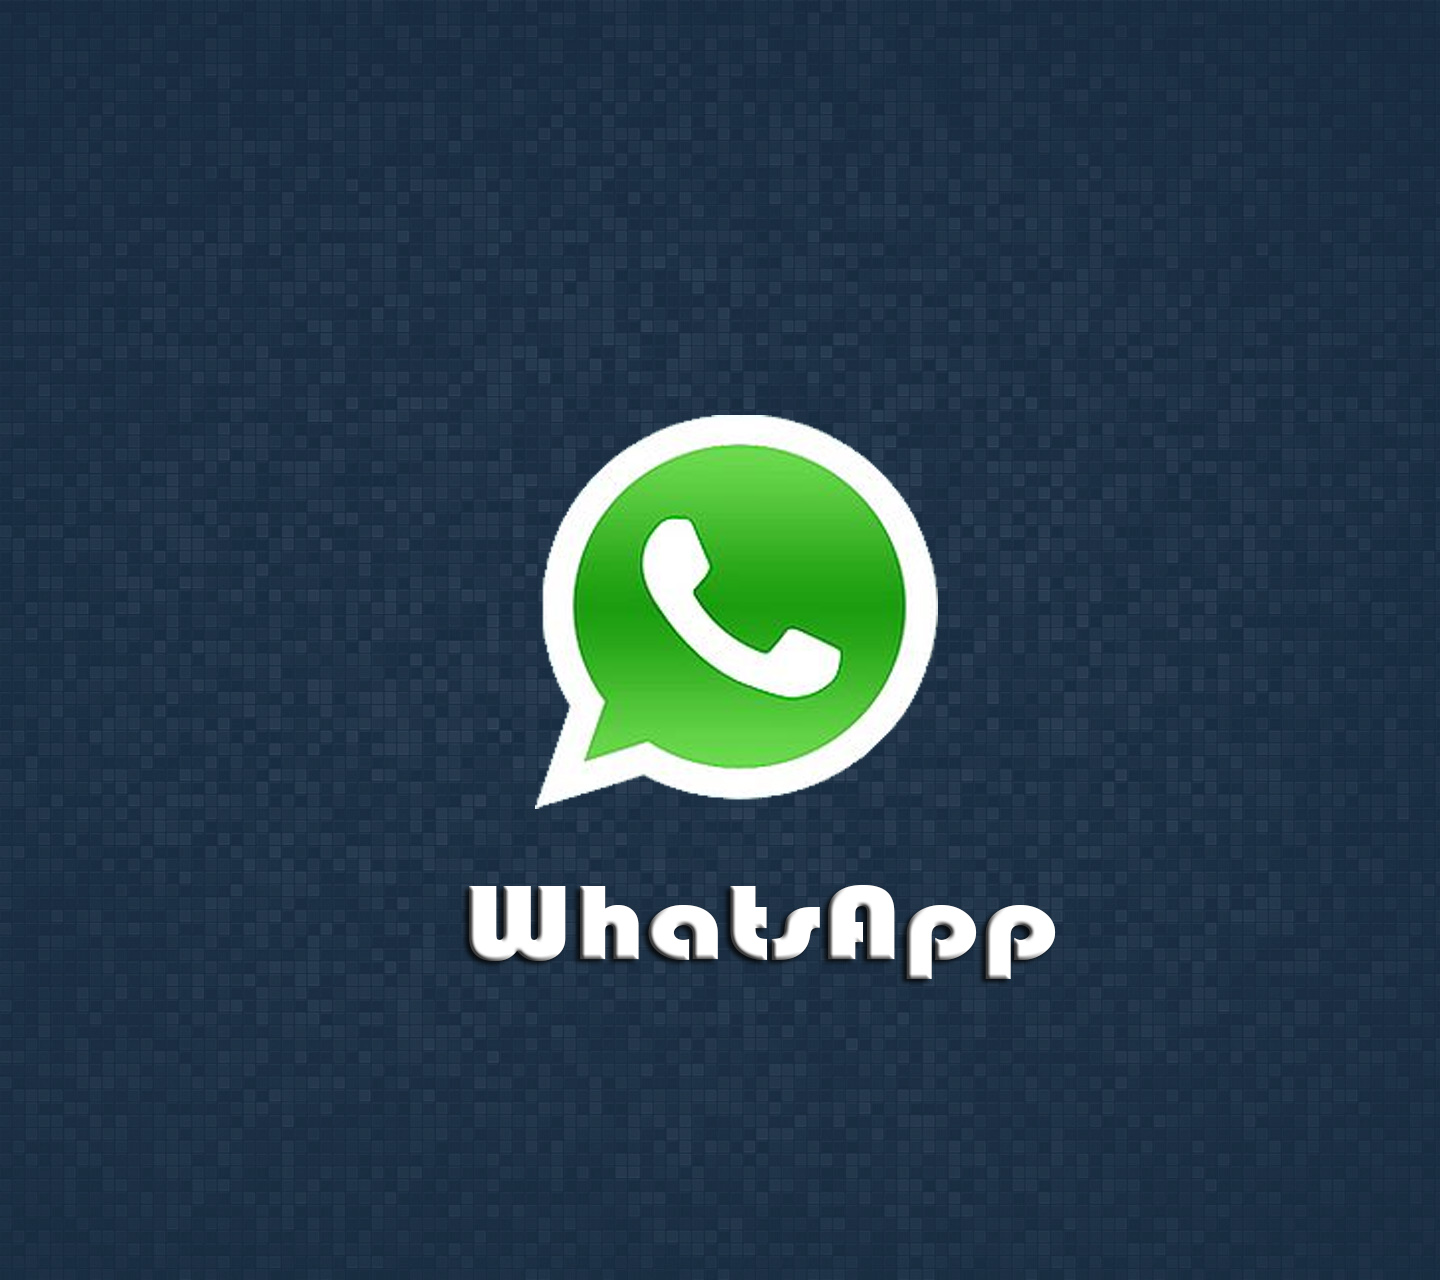 WhatsApp Unread